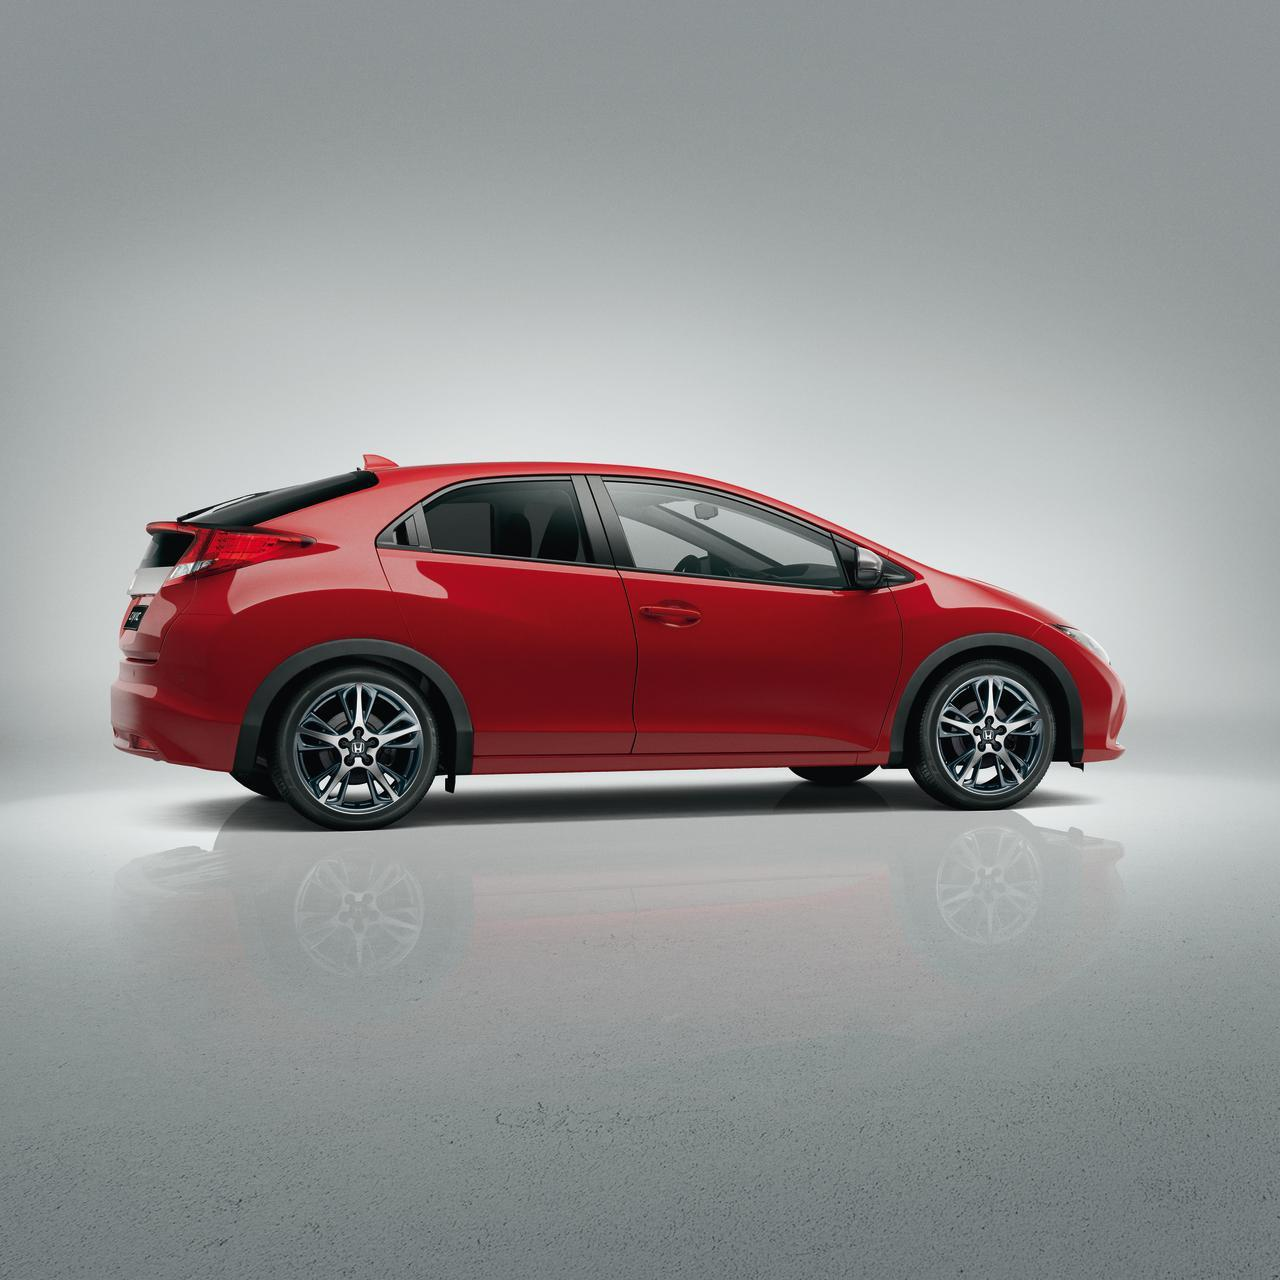 Foto de Honda Civic 2012 (99/153)